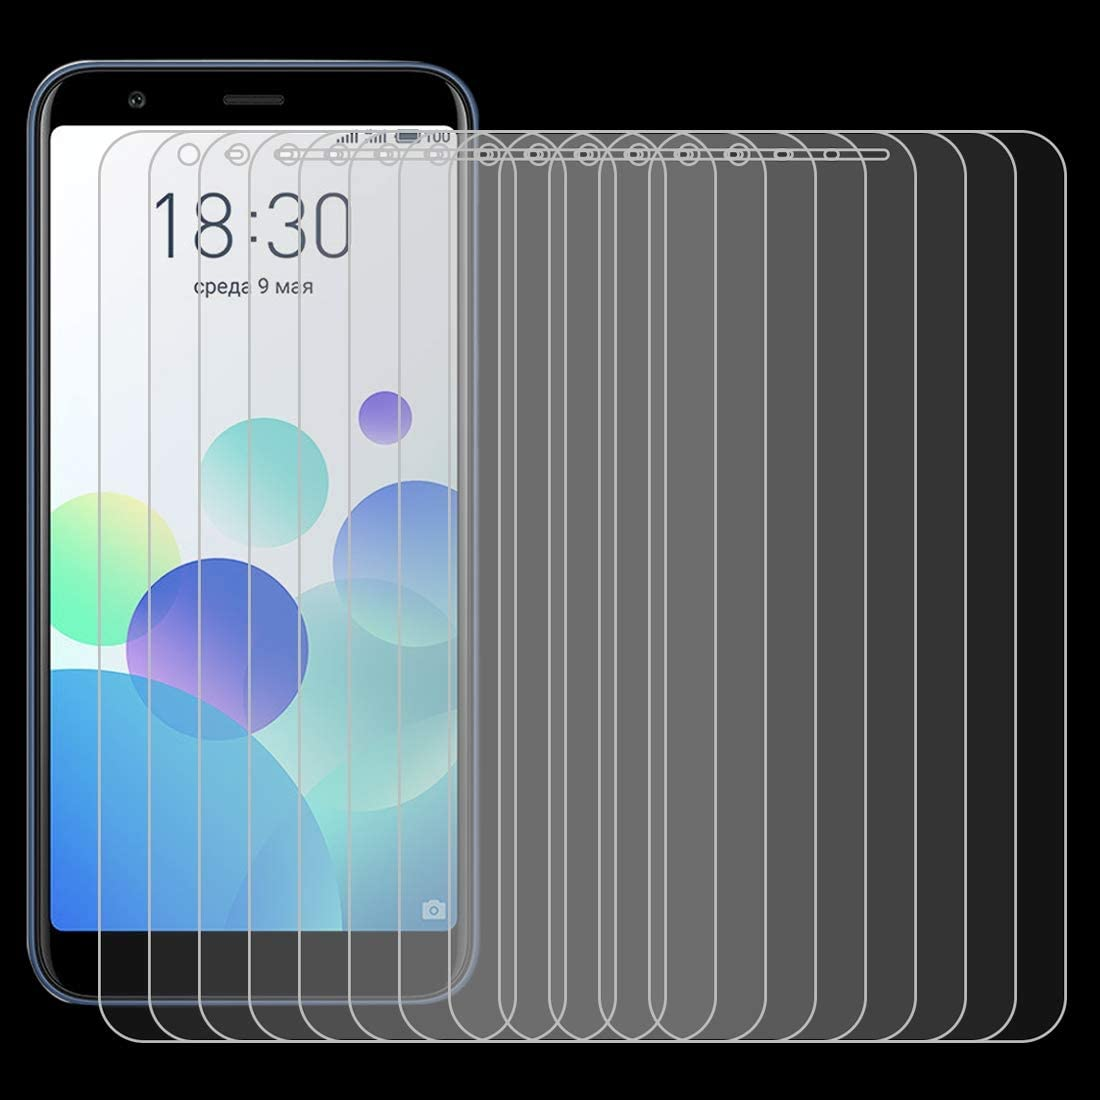 HAIJUN Phone Screen Film 100 PCS for ASUS ZenFone 6 0.26mm 9H Surface Hardness 2.5D Explosion-Proof Tempered Glass Screen Film Anti-Scratch Tempered Glass